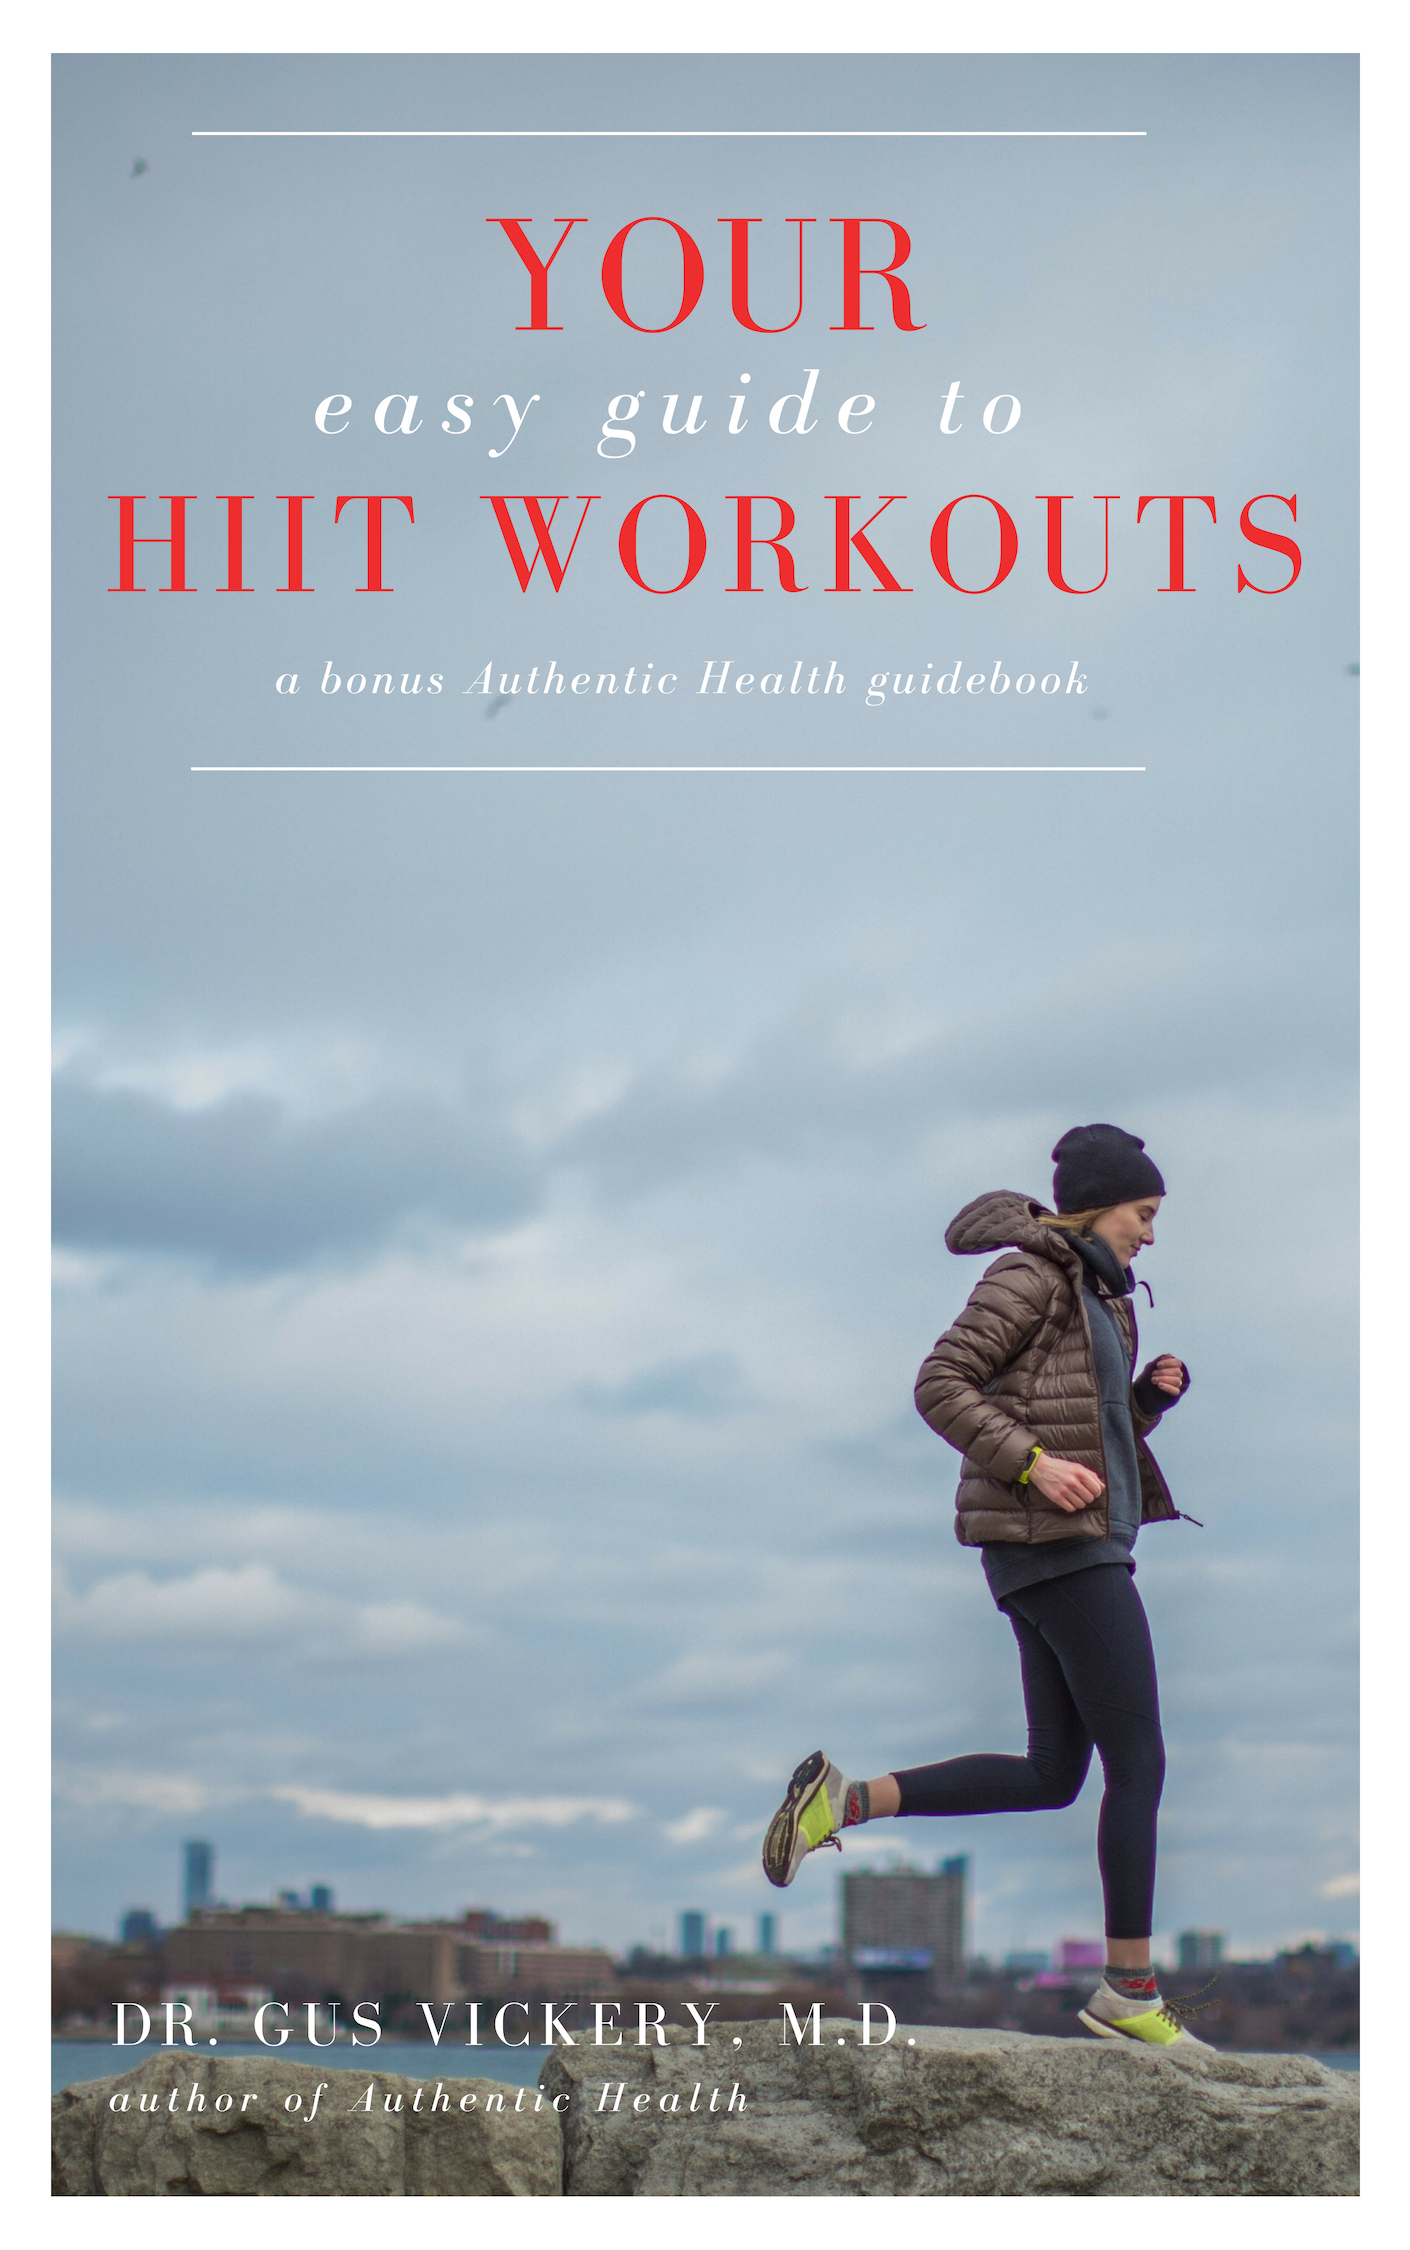 HIIT Workout Ebook Cover.jpg